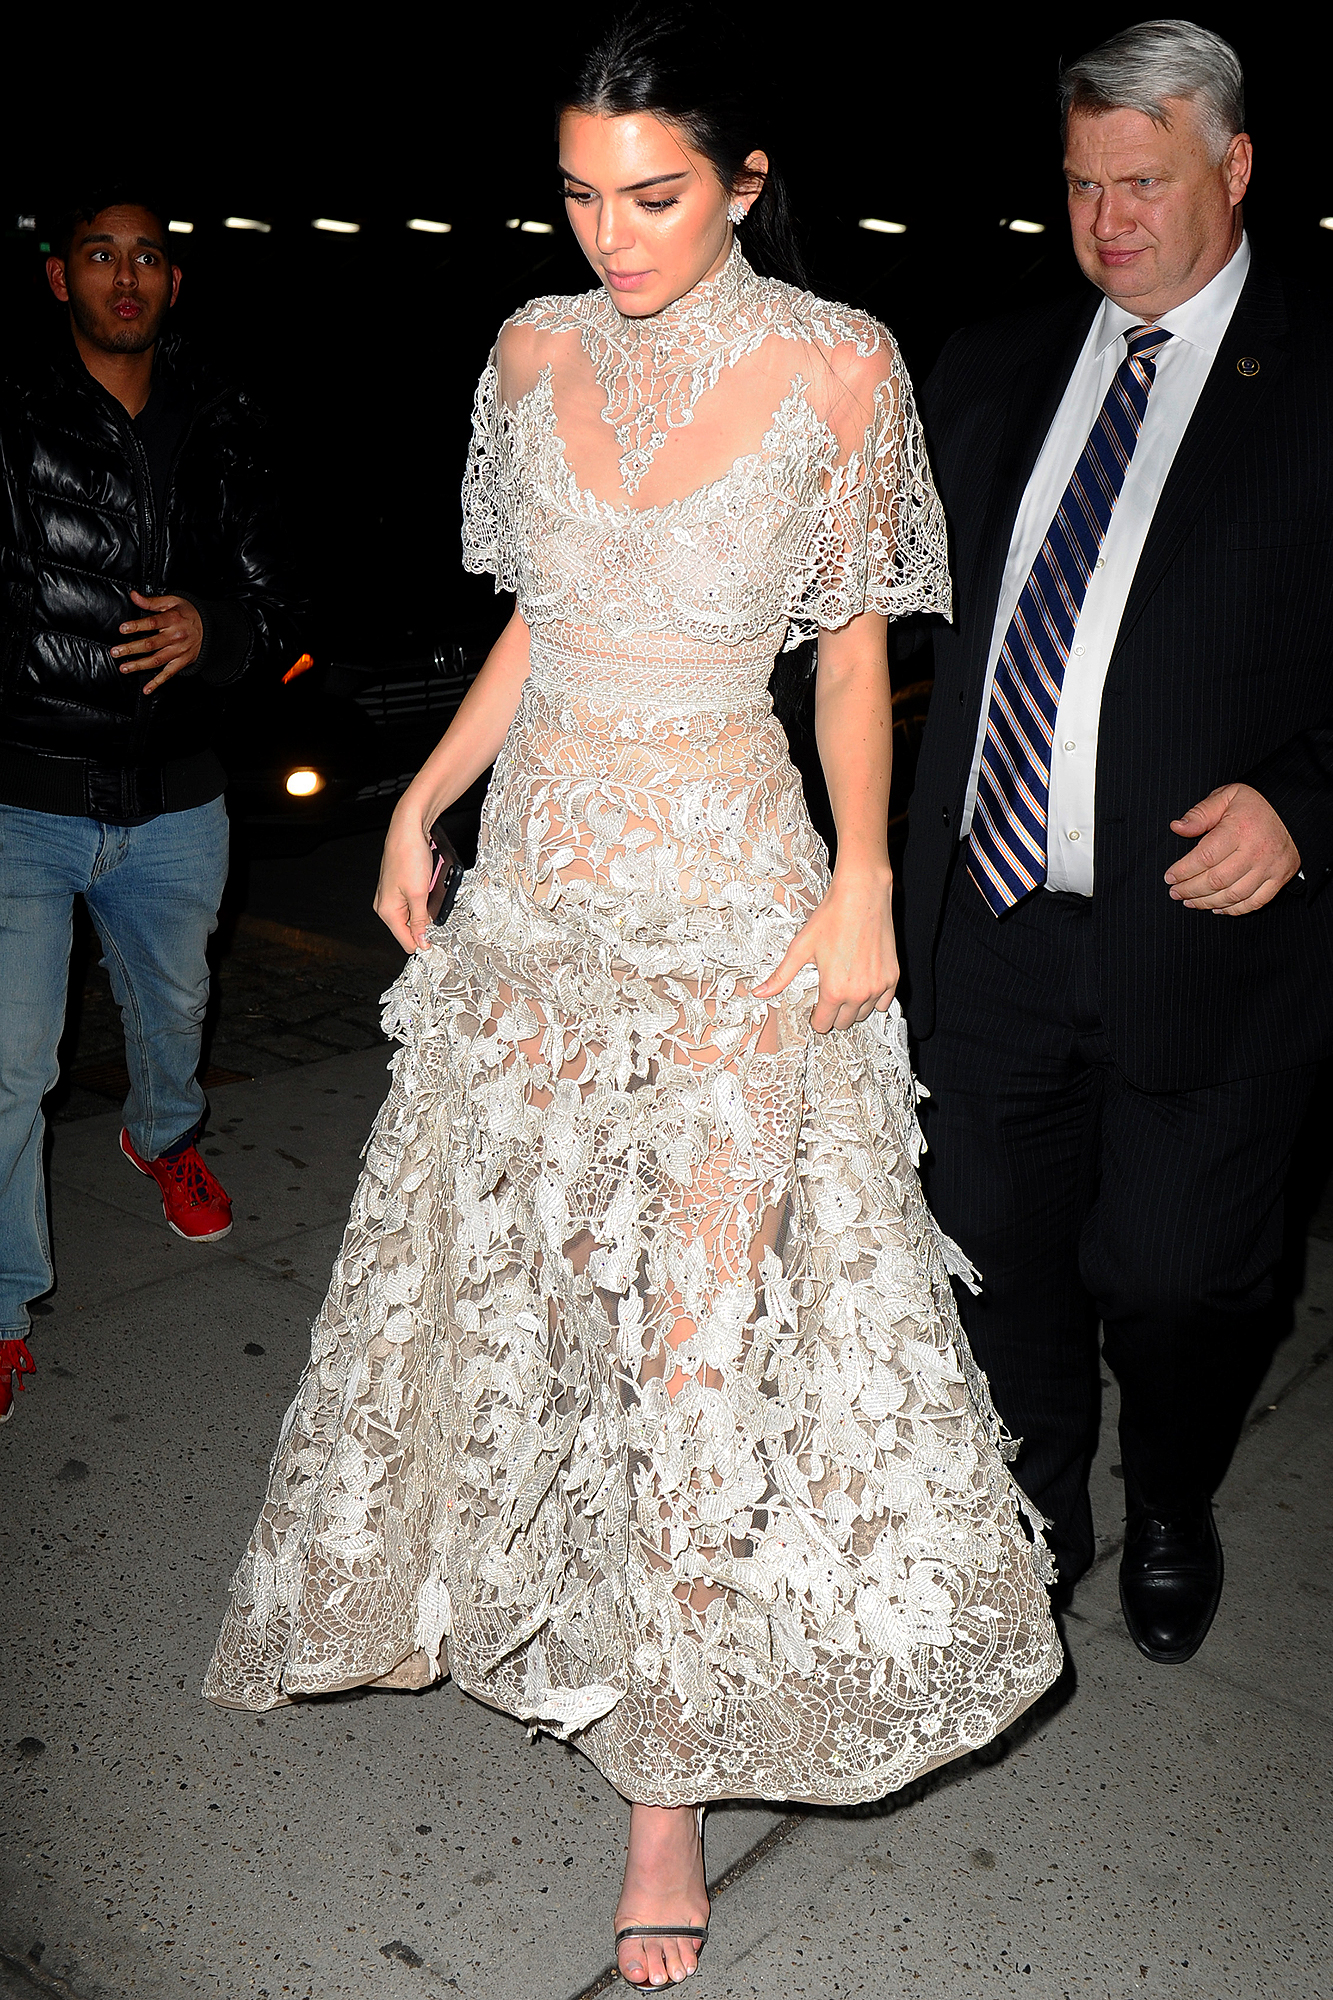 Kendall Jenner looks stunning in a lace gown outside her apartment in New York City